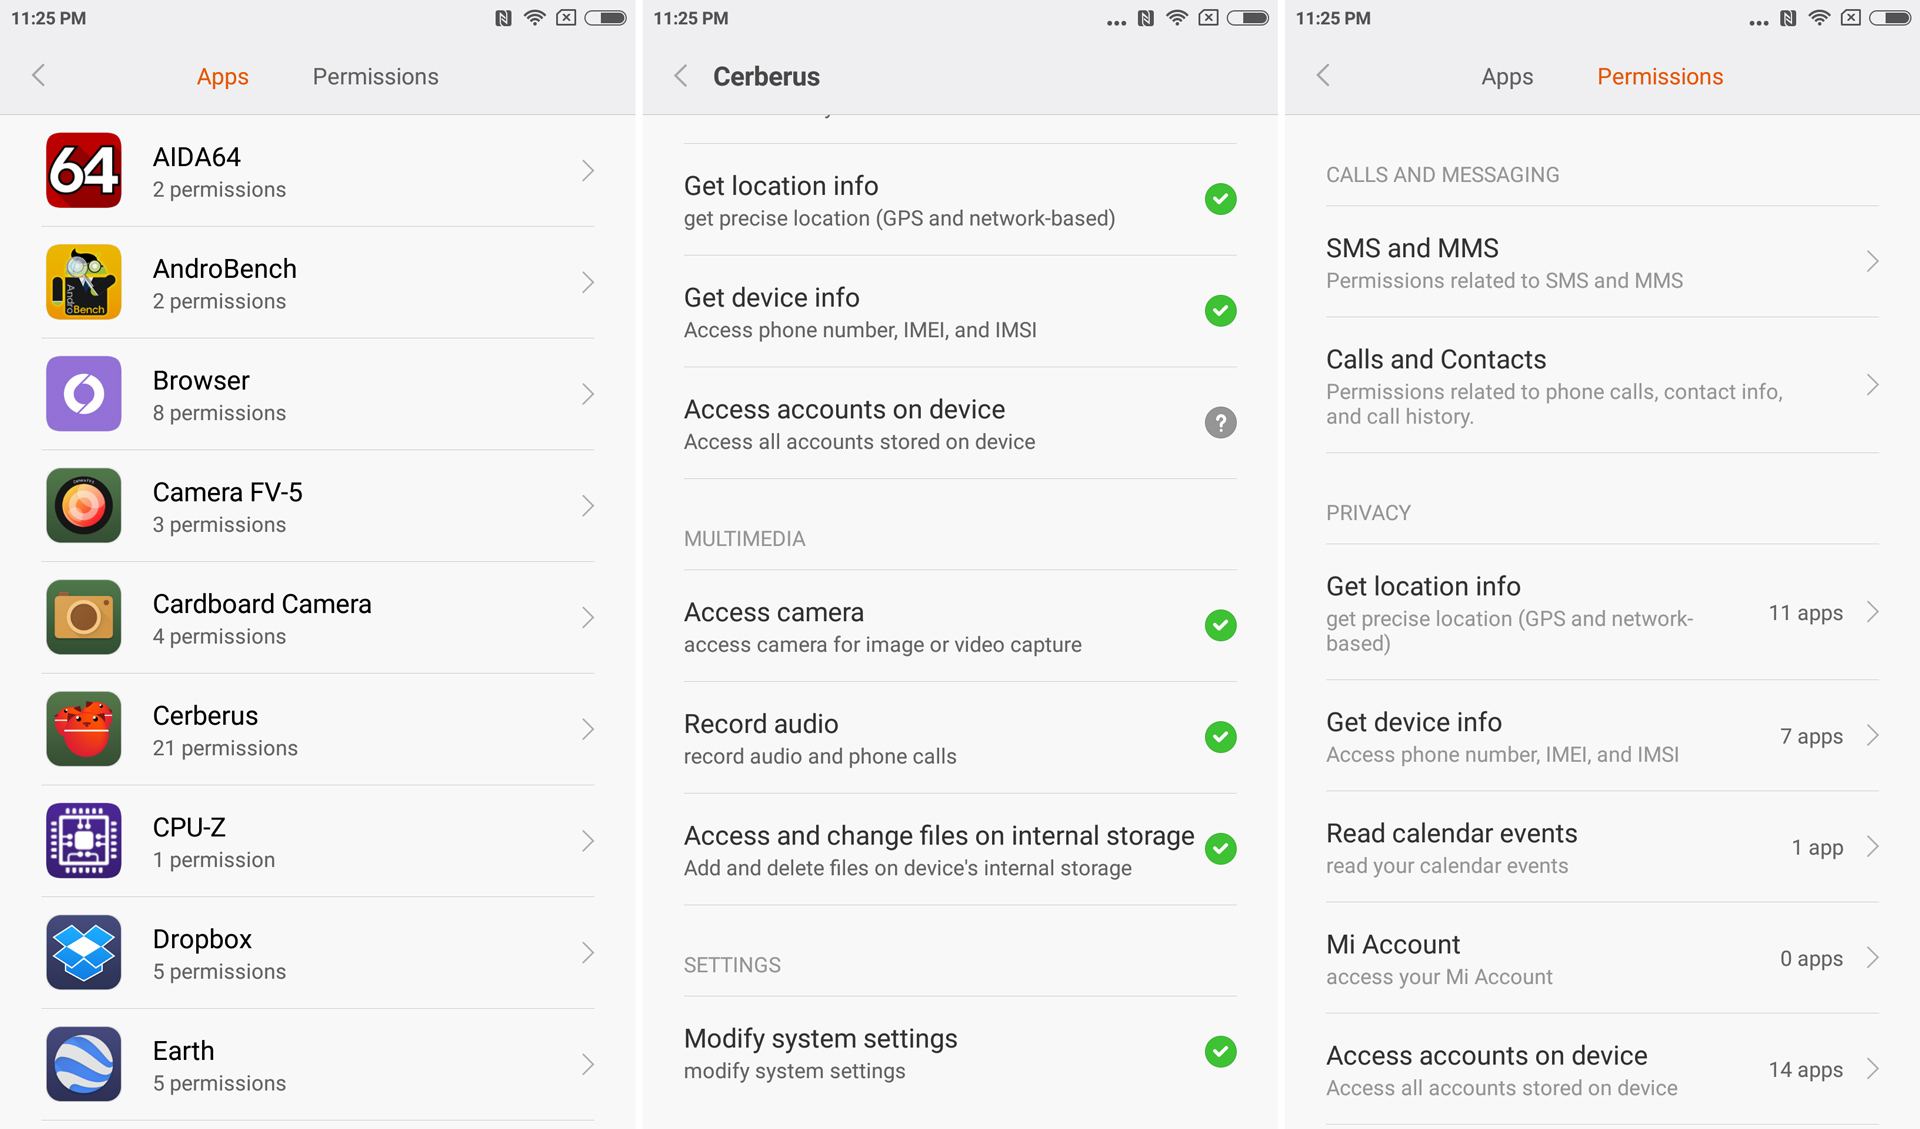 The permissions settings in MIUI. All of those Cerberus permissions were granted without consent.